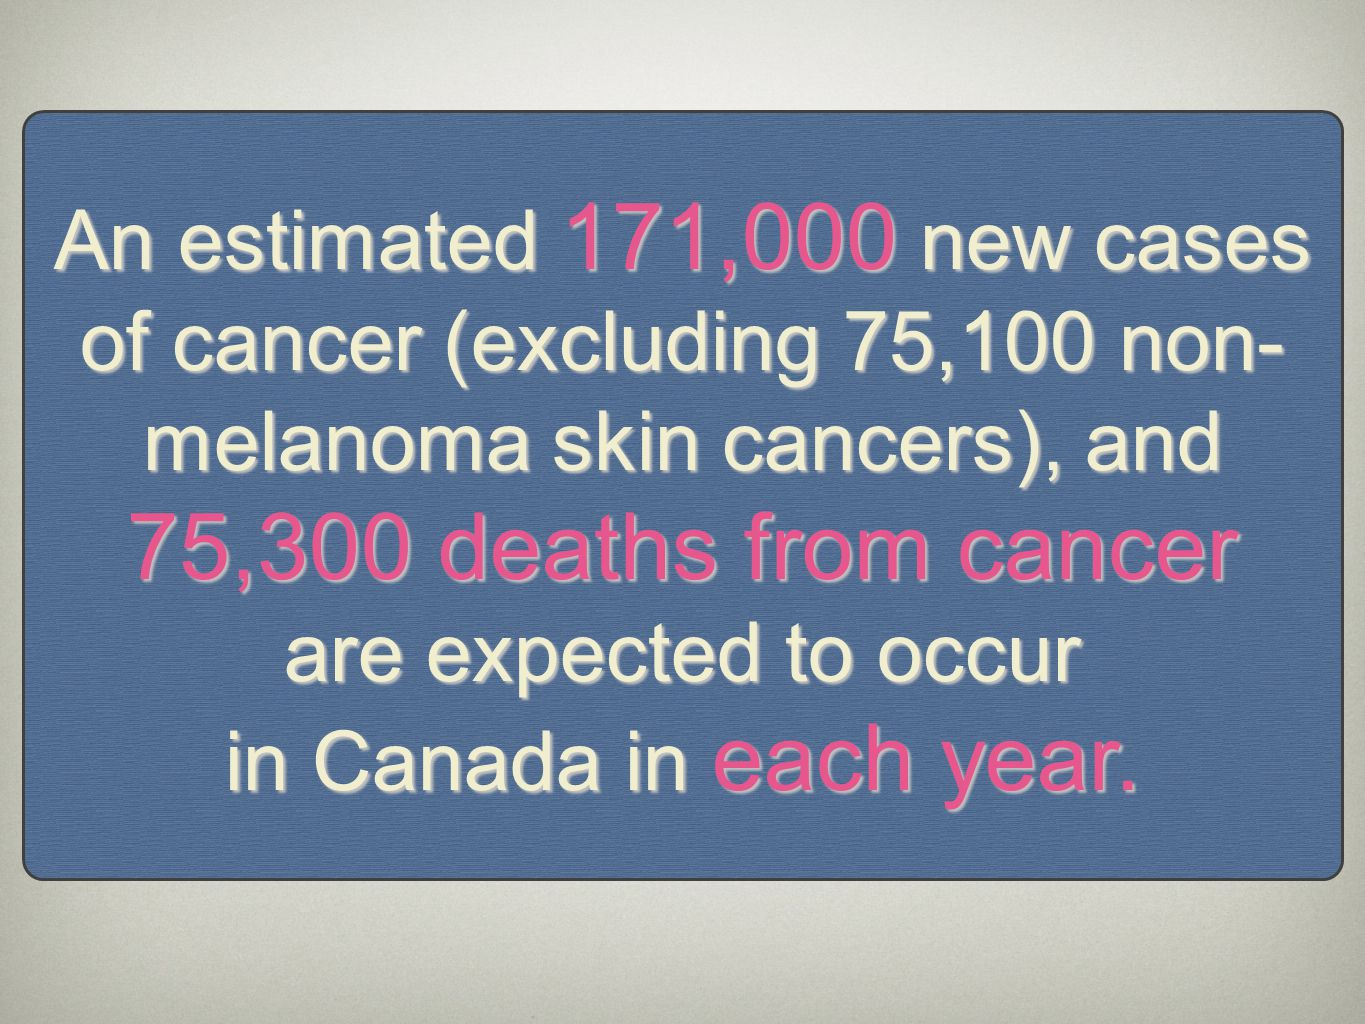 An estimated 171,000 new cases of cancer (excluding 75,100 non-melanoma skin cancers), and 75,300 deaths from cancer